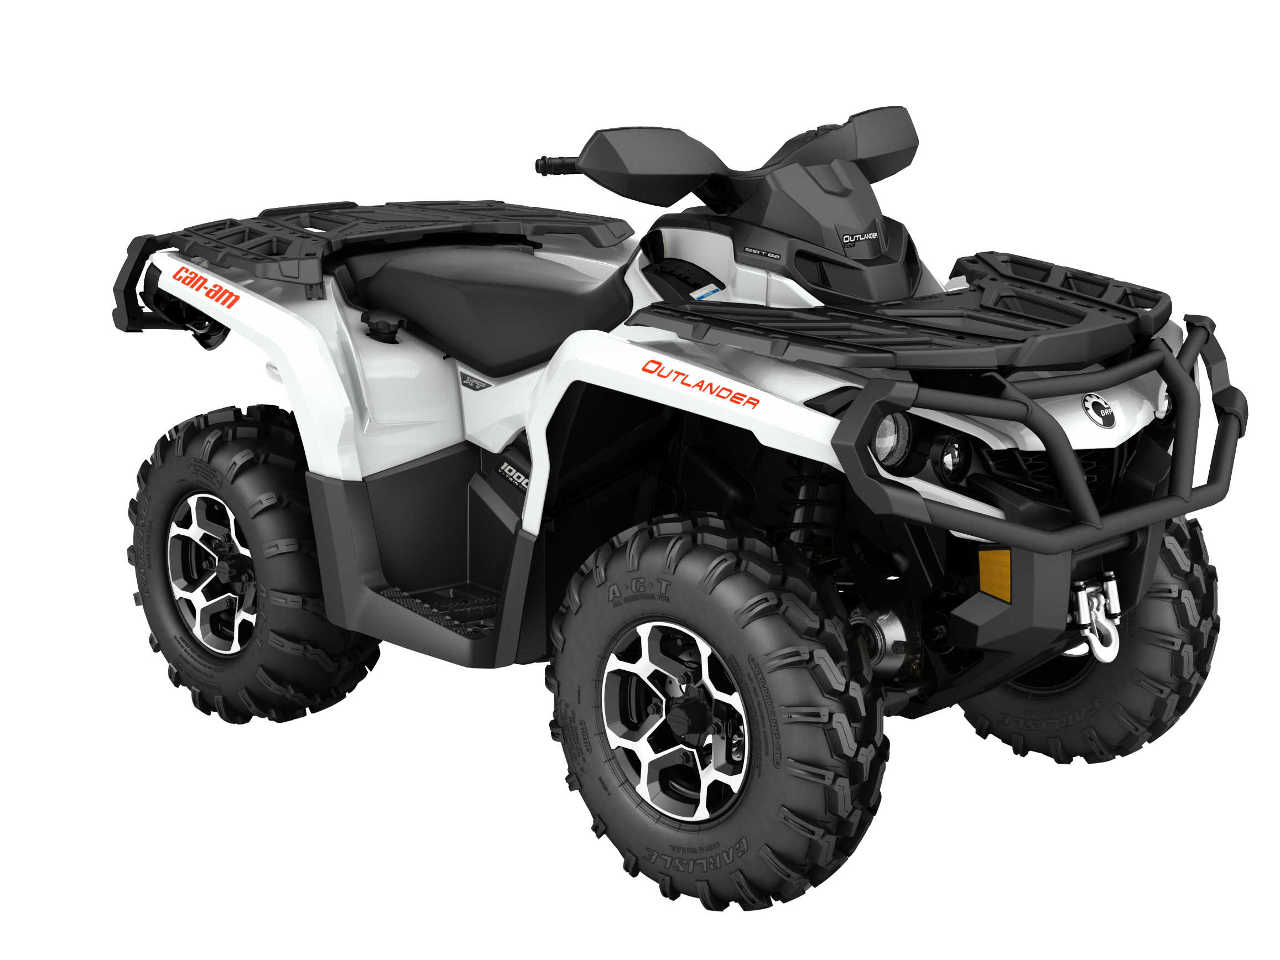 hight resolution of can am 2010 renegade 800 wiring diagram 2010 can am 2006 can am outlander 800 wiring diagram 07 can am outlander 800 wiring diagram